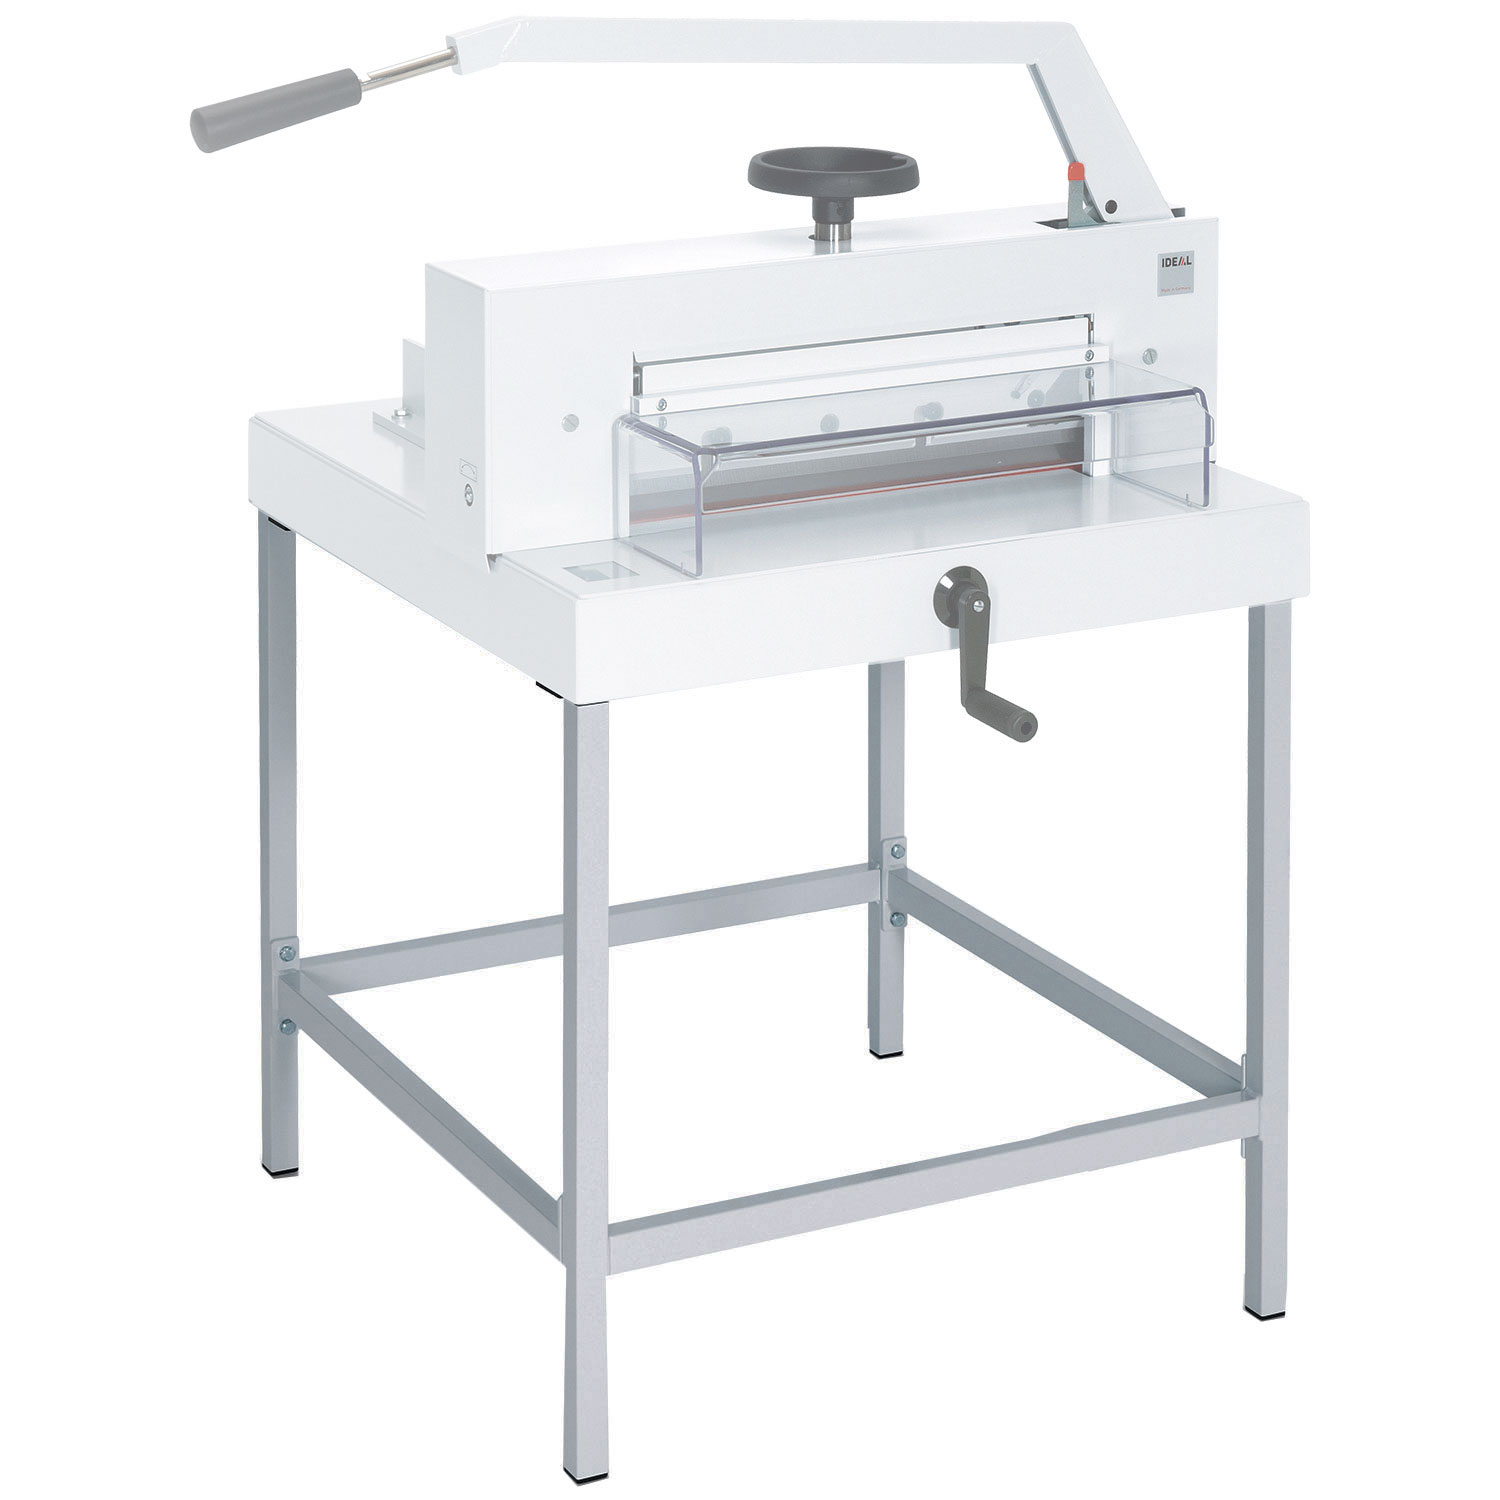 IDEAL Floor-Stand For IDEAL 4700 & 4705 Guillotines